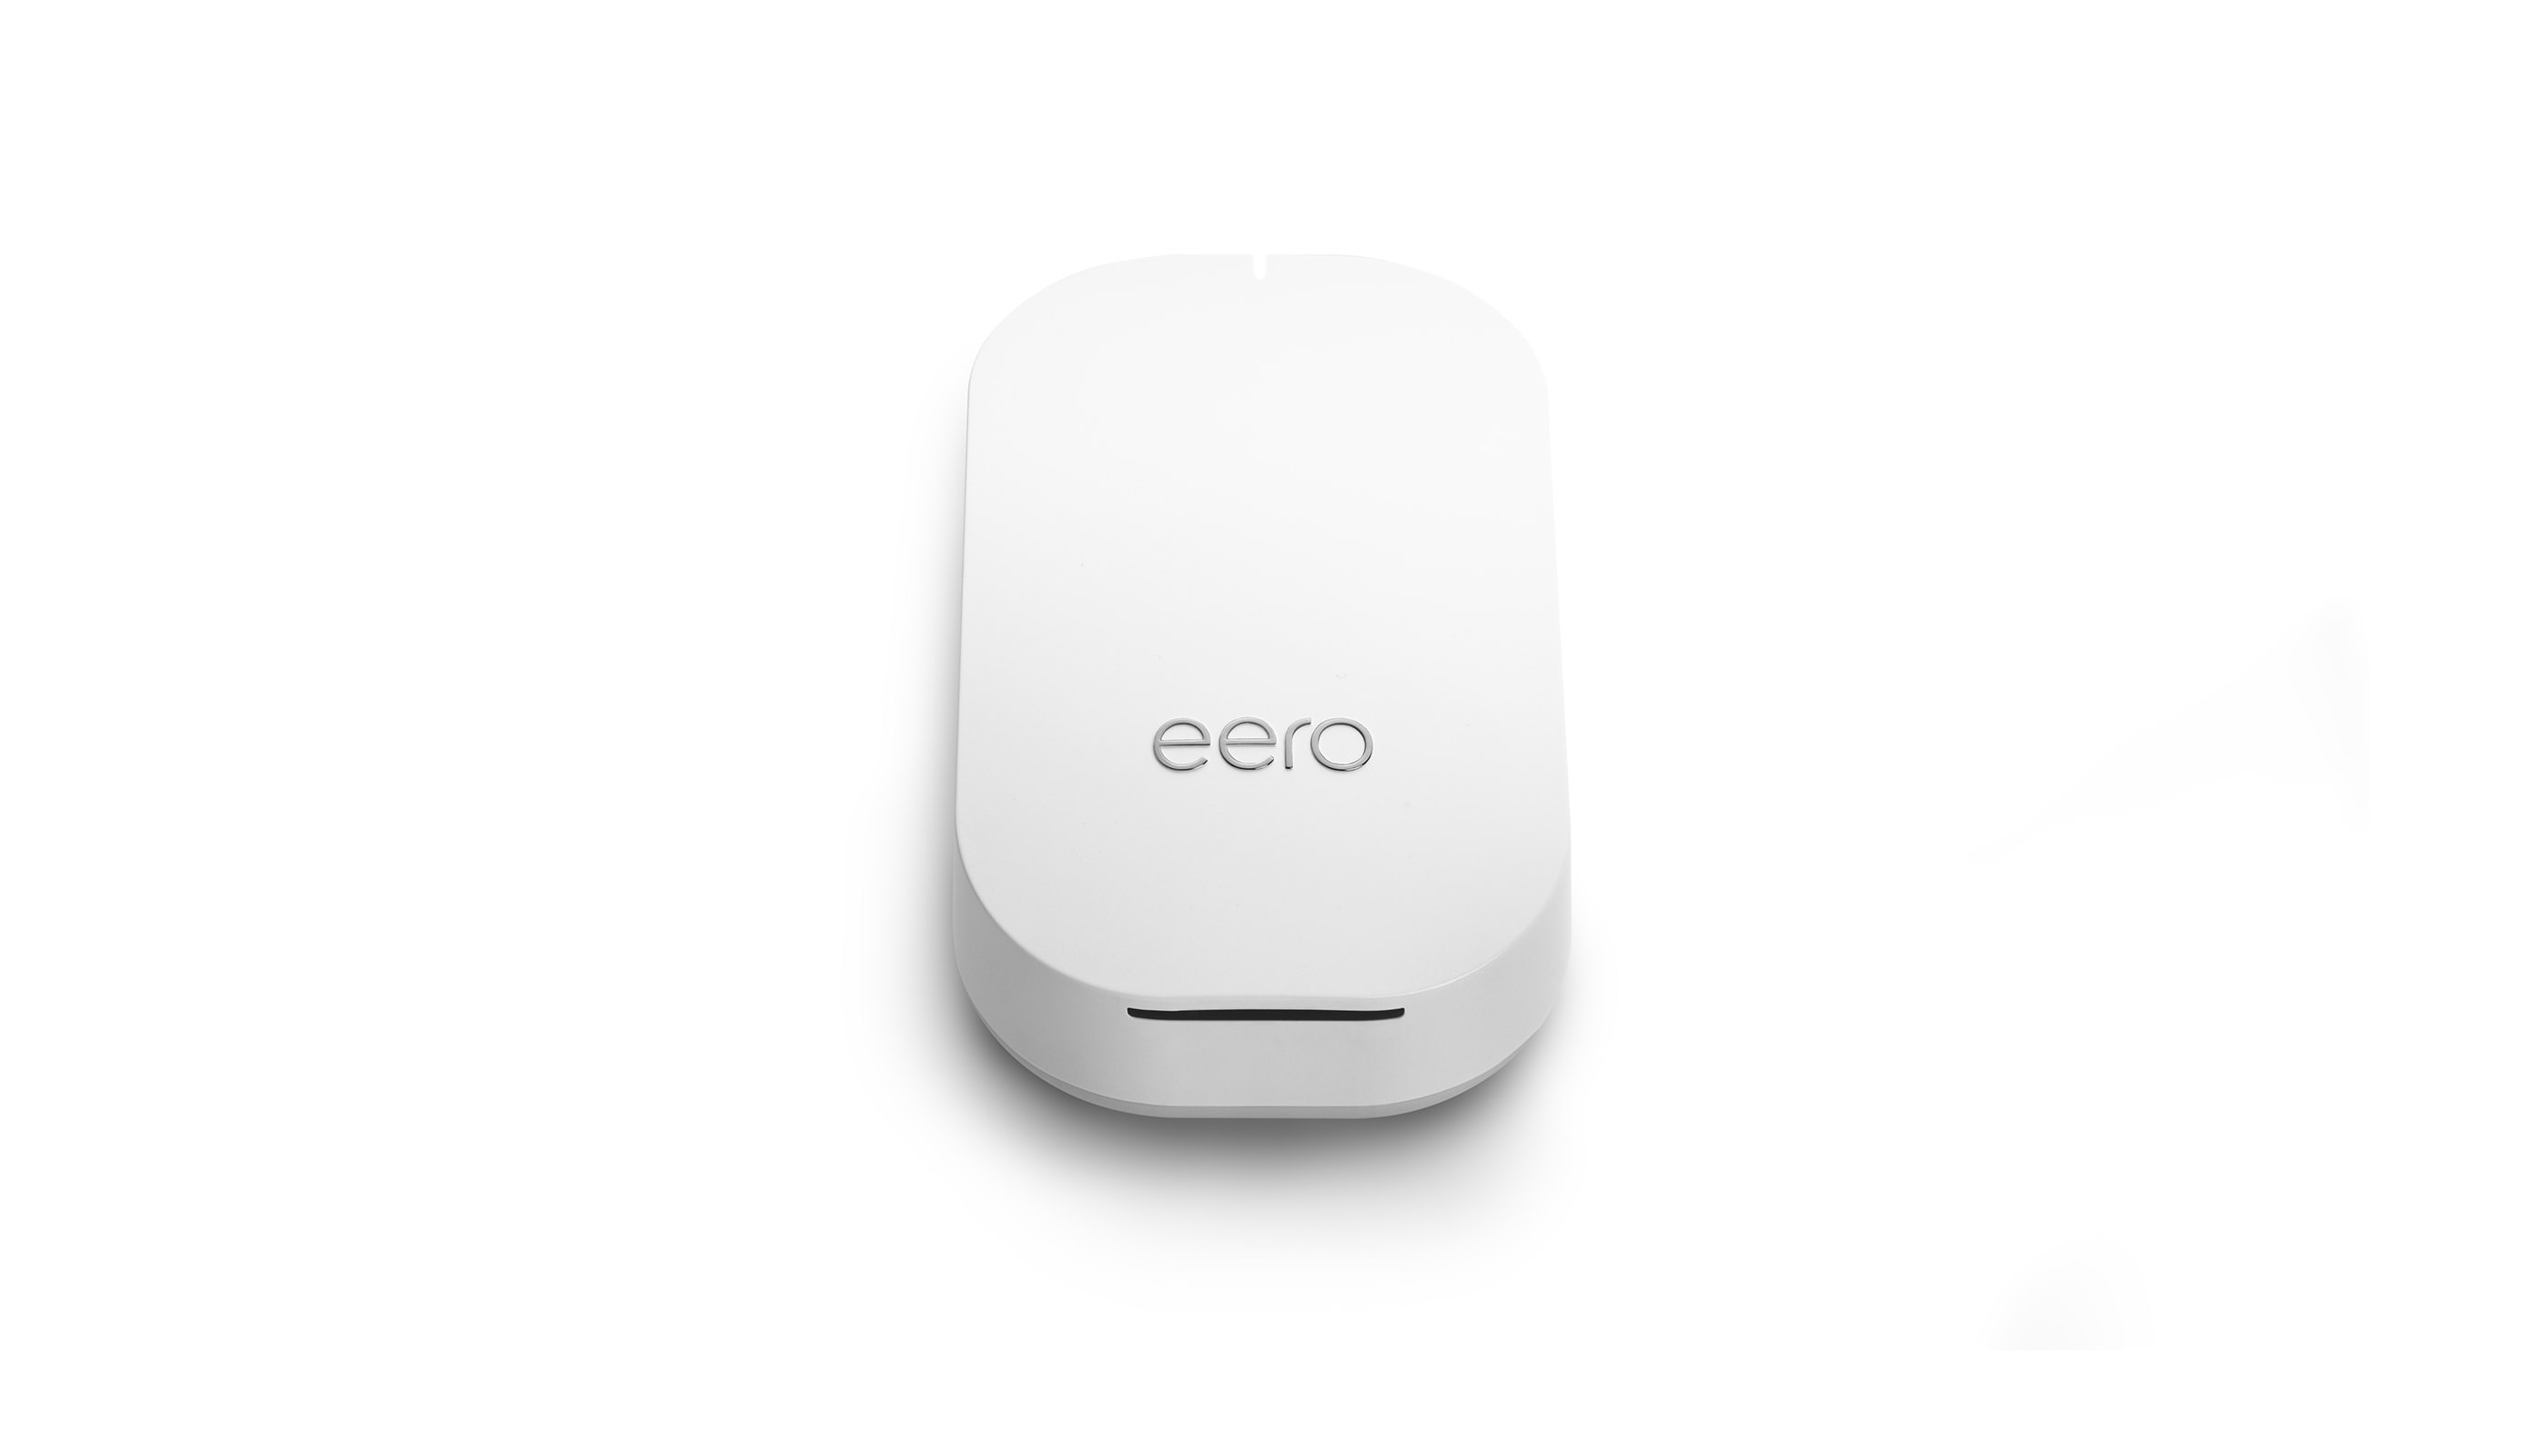 eero Beacon product shots